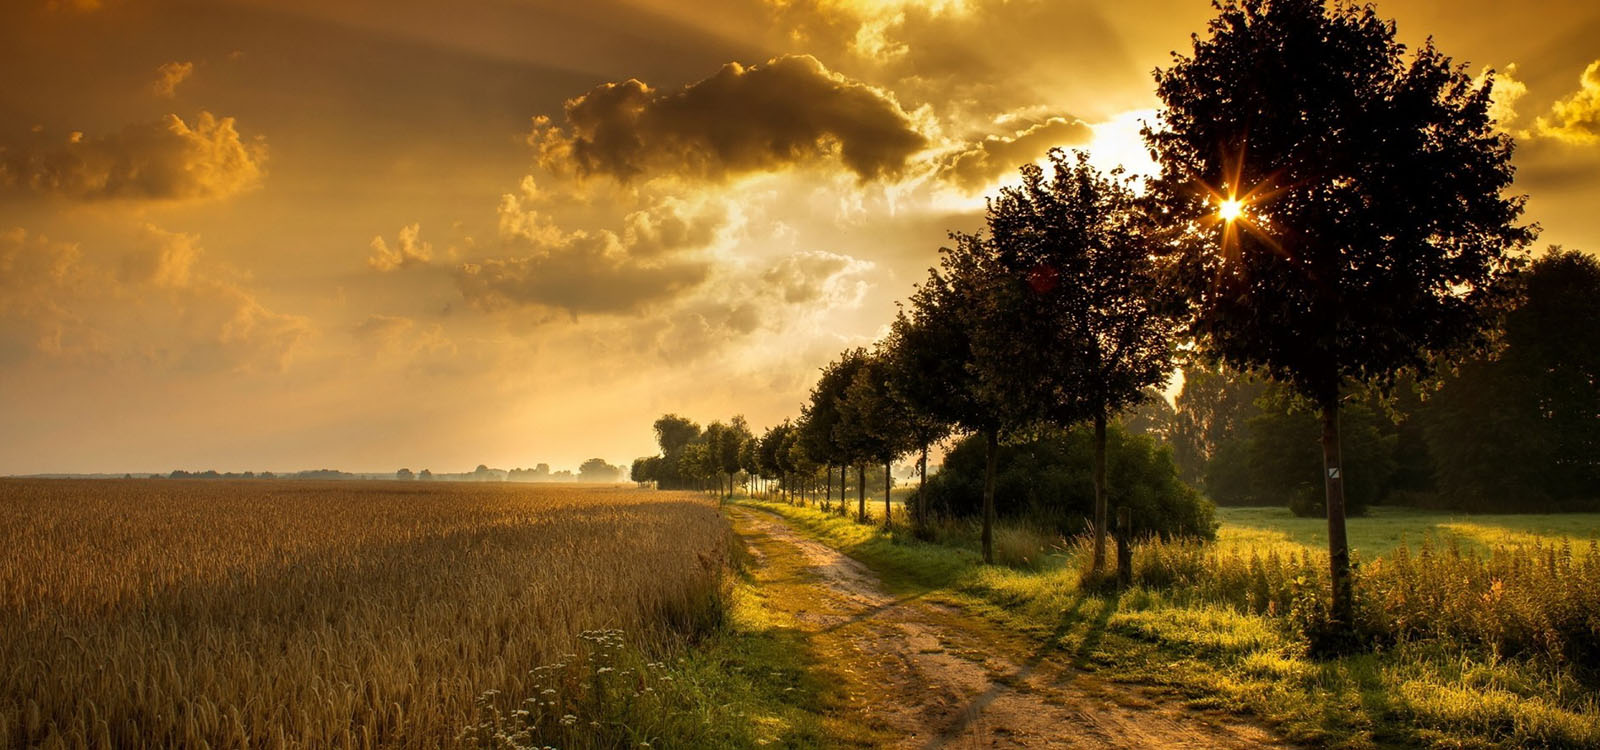 733226-amazing-nature-wallpaper_0000_countryside-sunset-4170